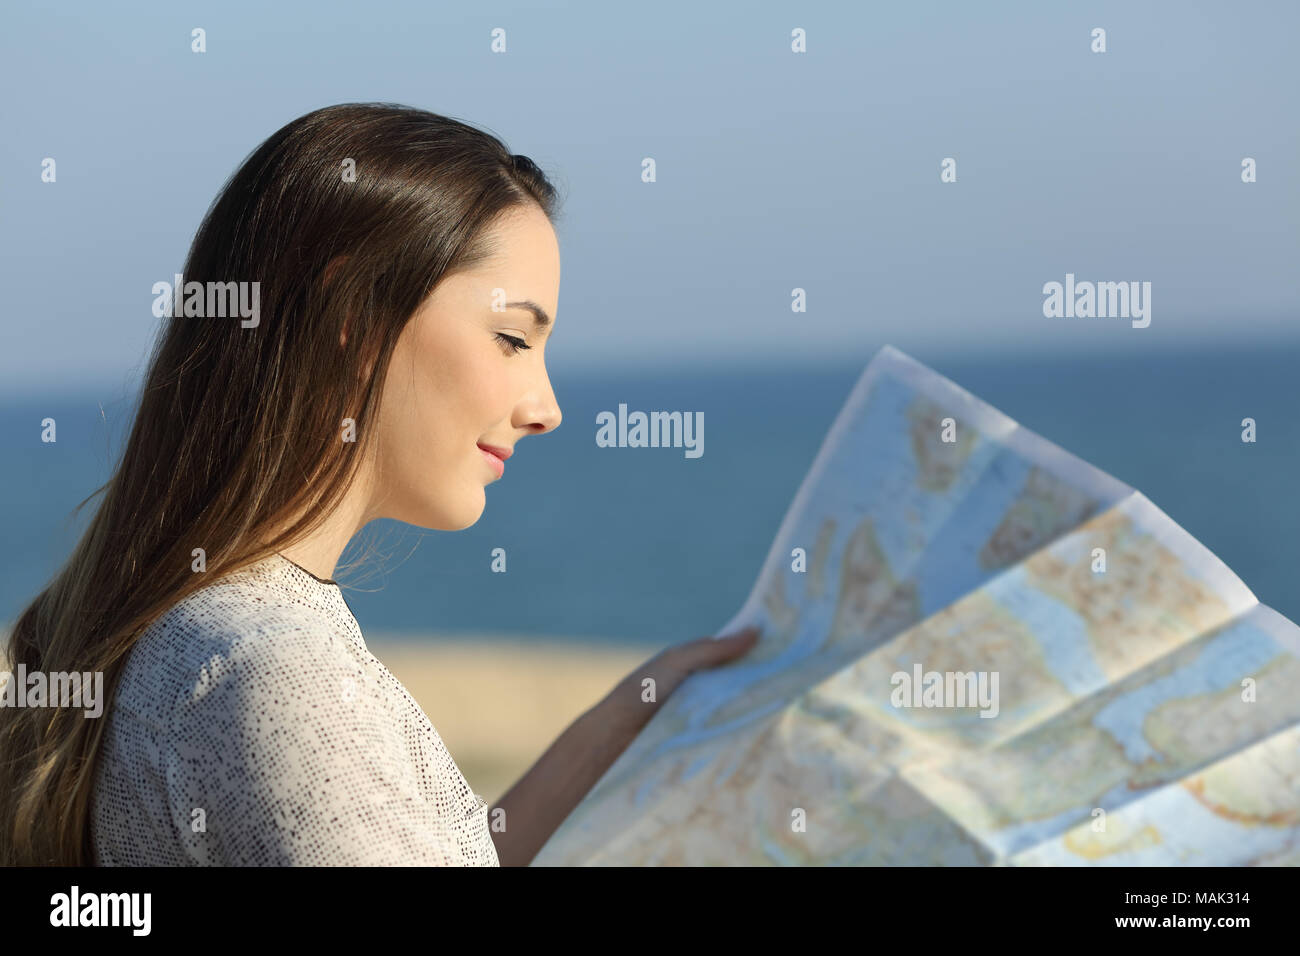 Beautiful tourist checking a guide map on the beach - Stock Image